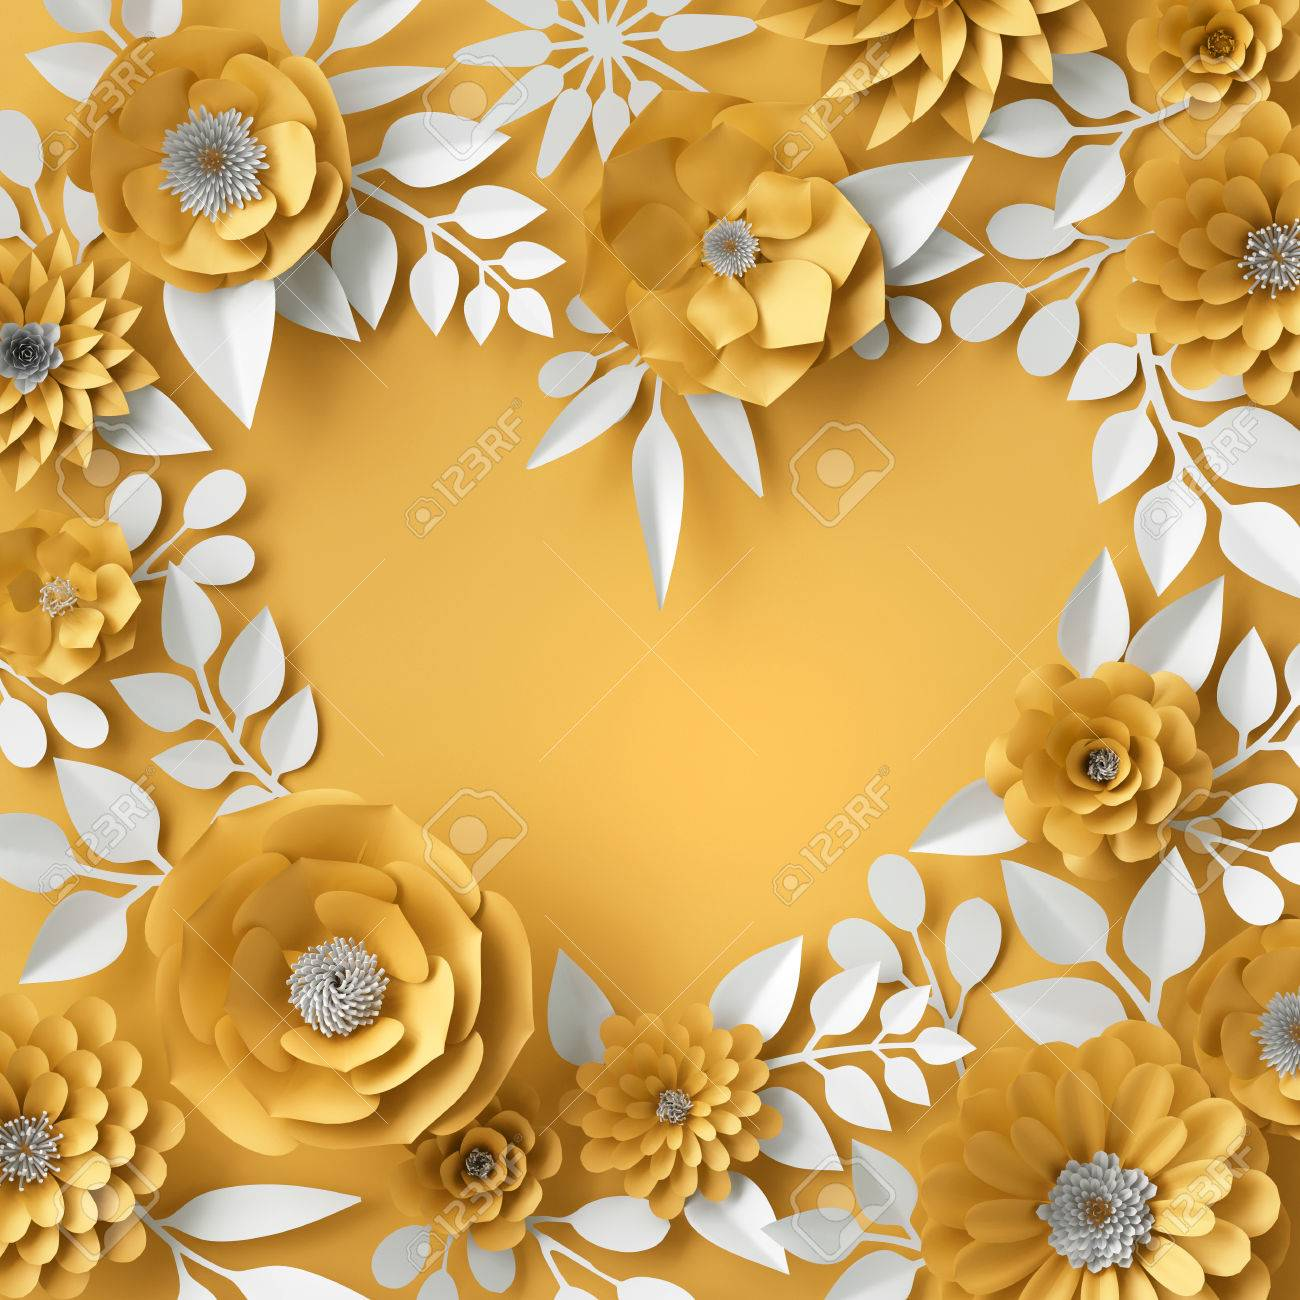 3d illustration decorative red paper flowers background floral 3d illustration decorative red paper flowers background floral heart frame stock illustration 74884778 mightylinksfo